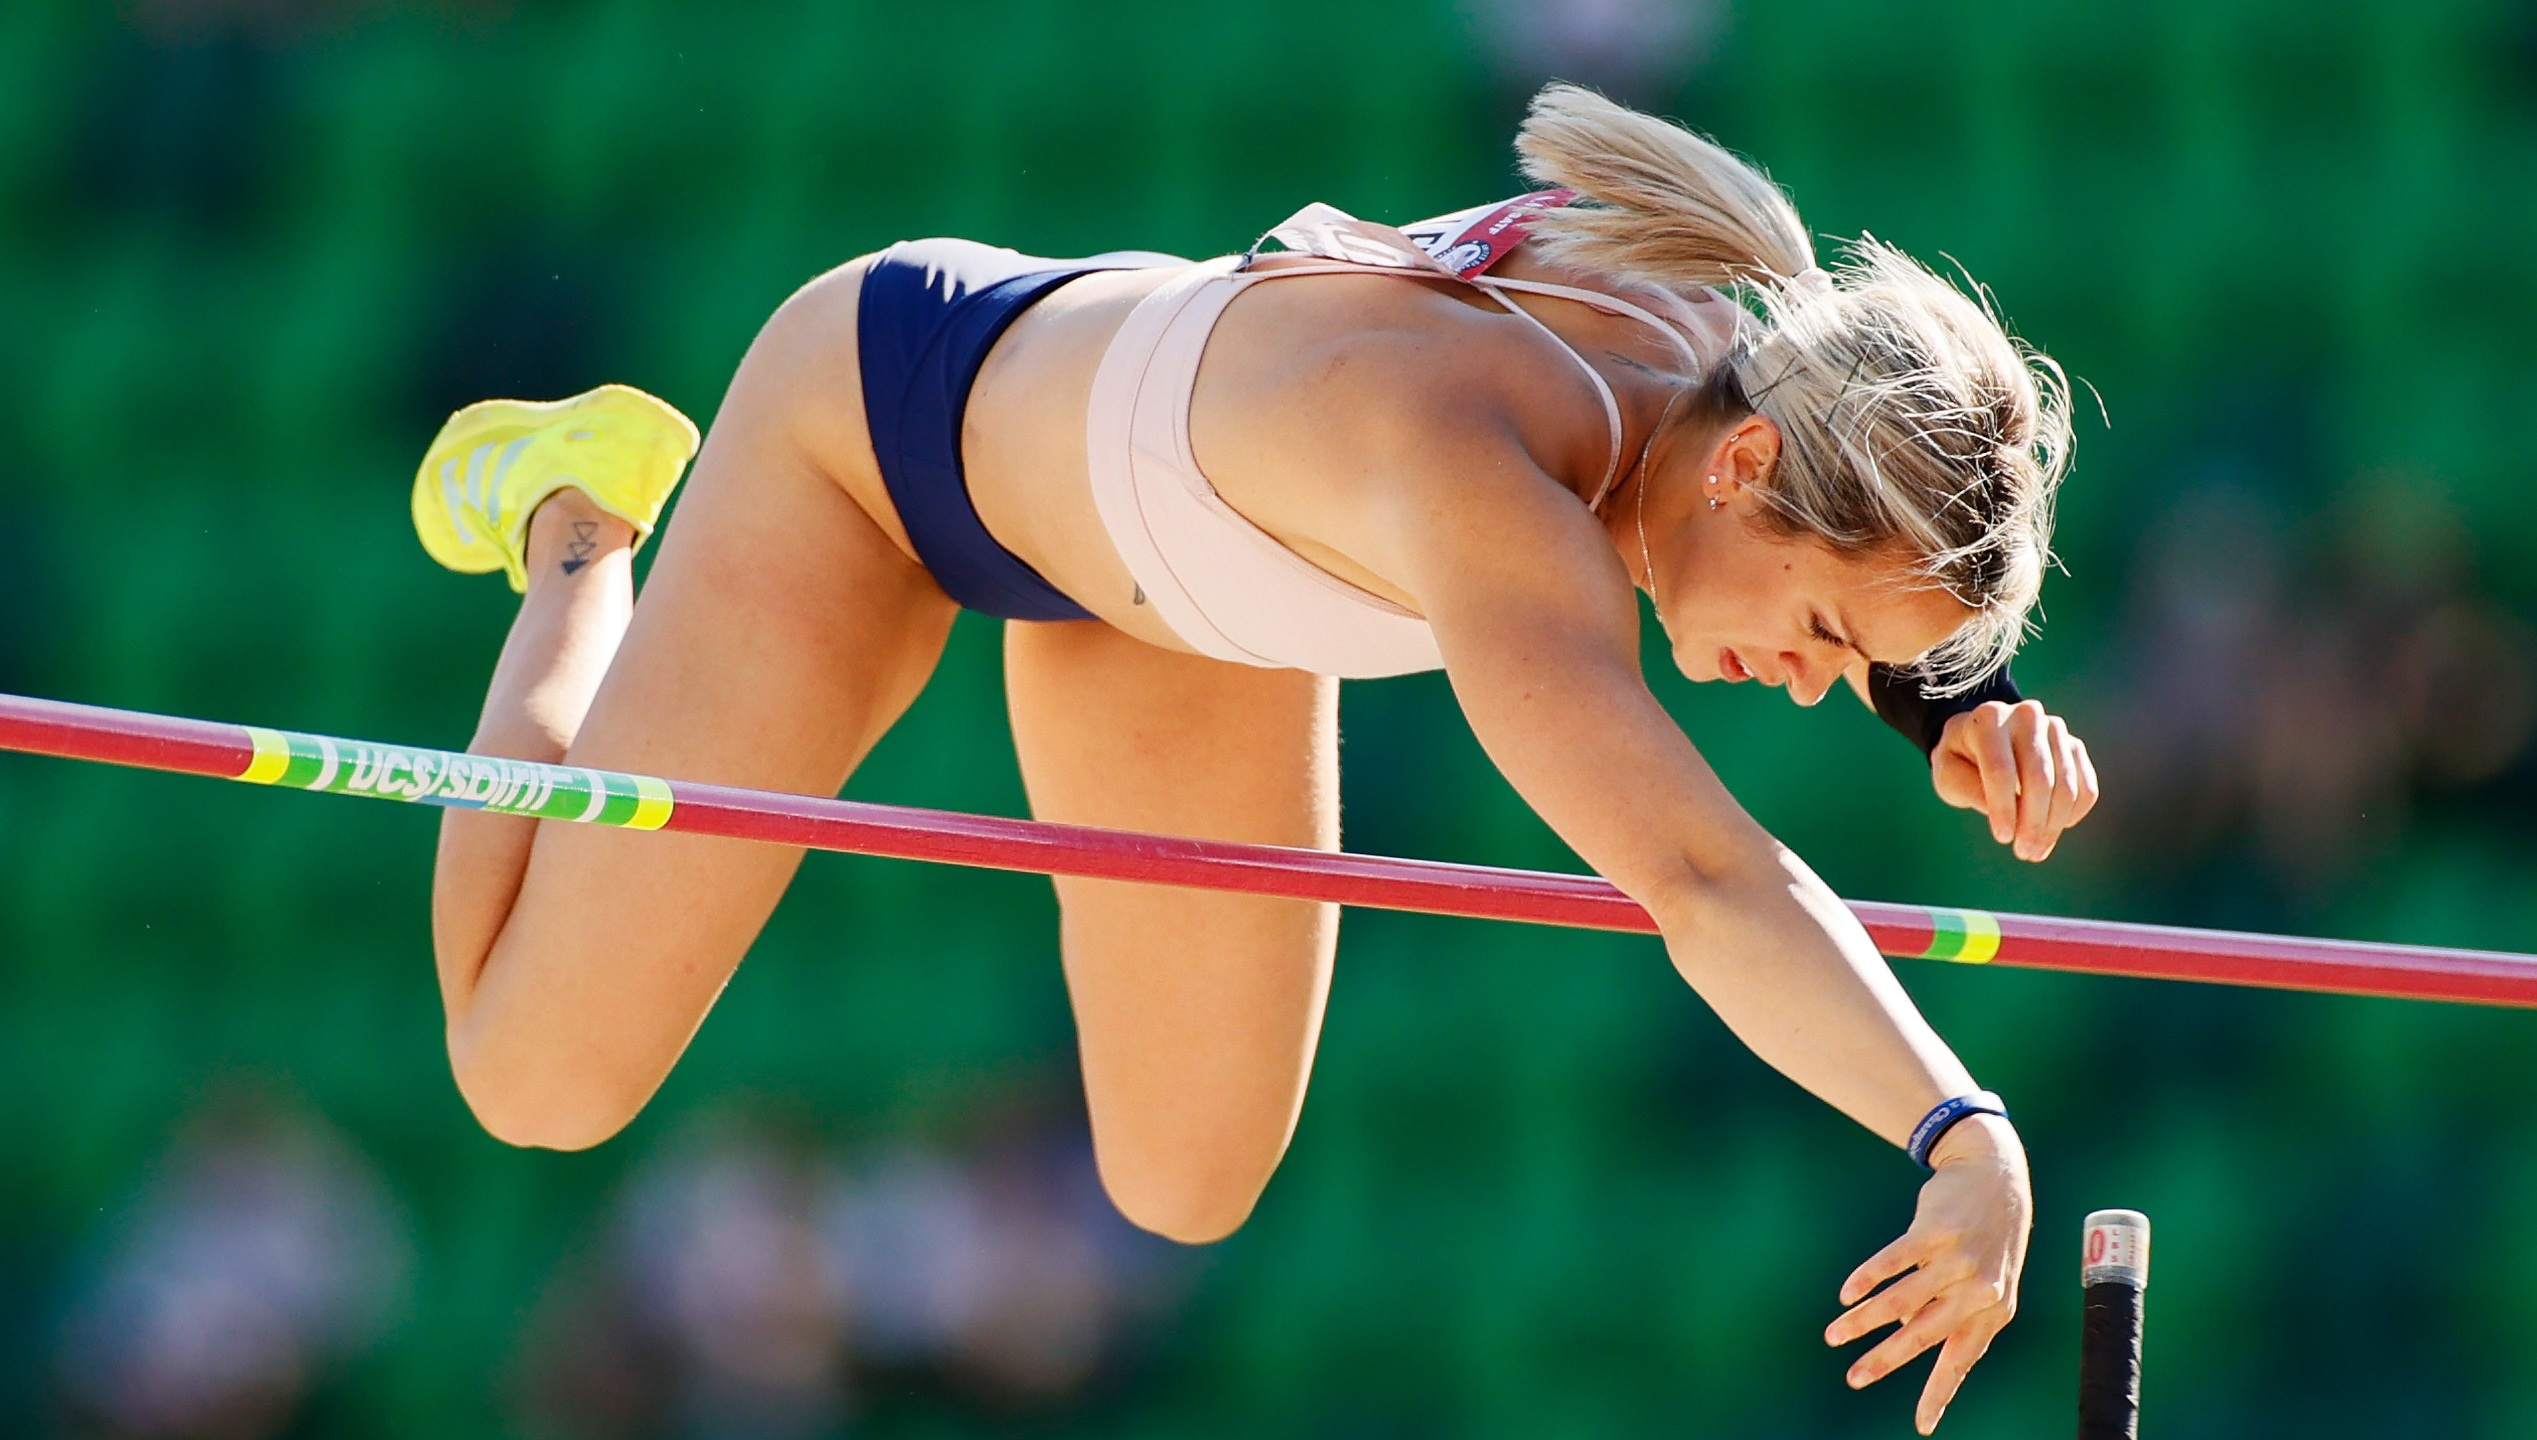 EUGENE, OREGON - JUNE 24: Morgann LeLeux competes in the first round of the Women's Pole Vault on day seven of the 2020 U.S. Olympic Track & Field Team Trials at Hayward Field on June 24, 2021 in Eugene, Oregon. (Photo by Steph Chambers/Getty Images)